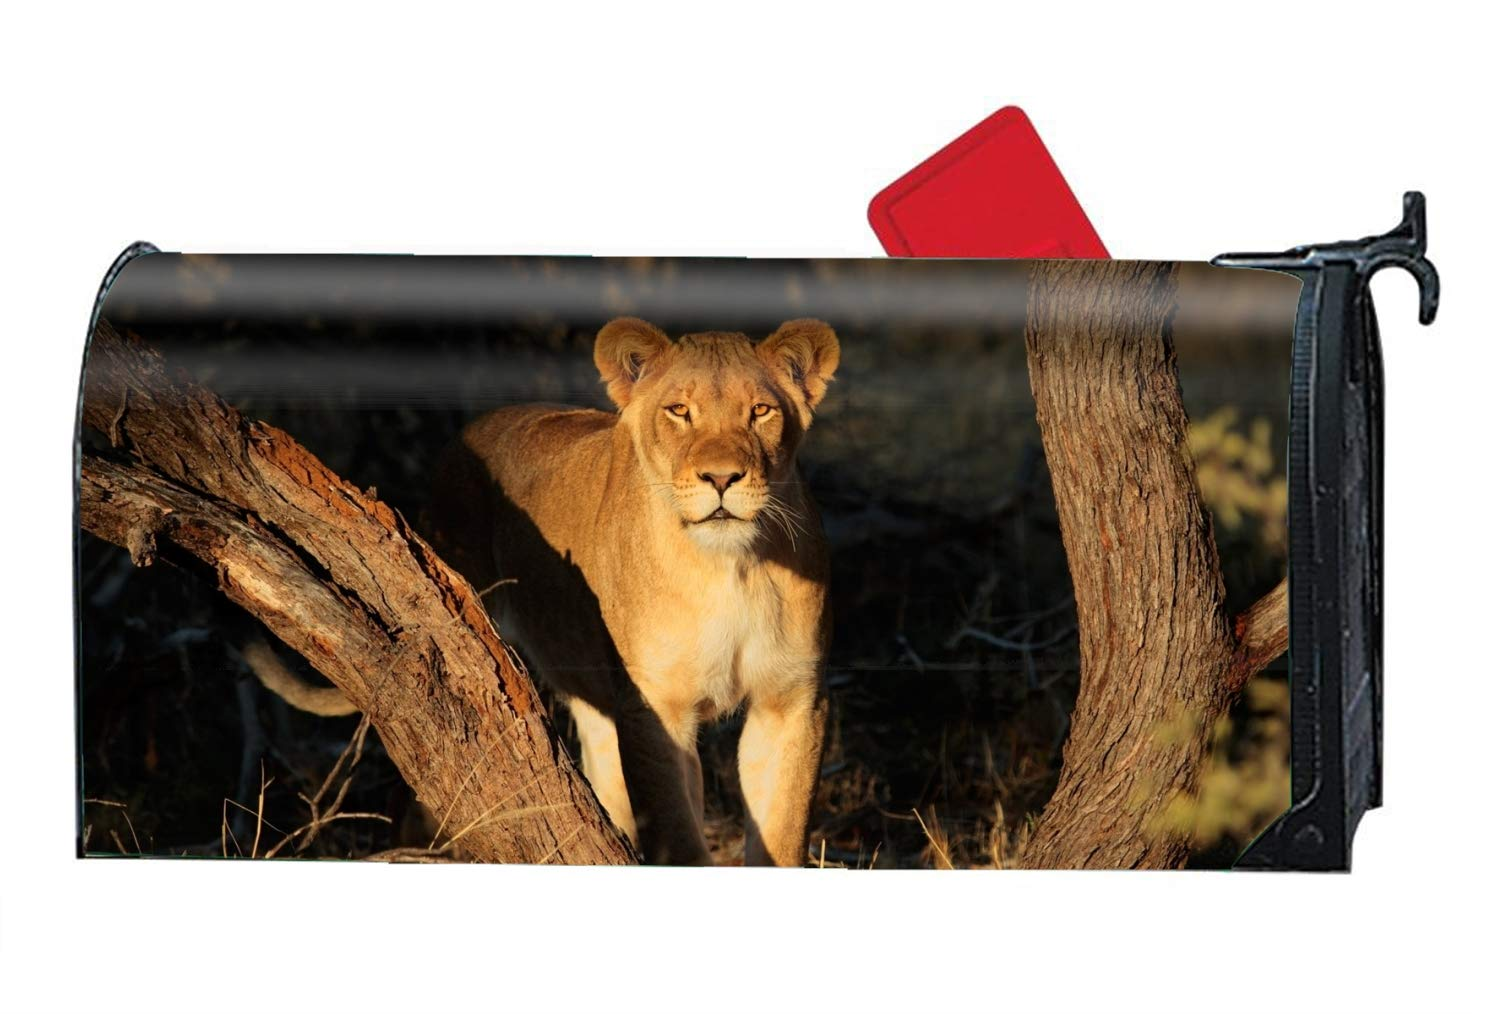 MAILL Animal Lion Stare Mailbox Cover - Mailbox Makeover - Magnetic Cover 9'' W x 21'' L